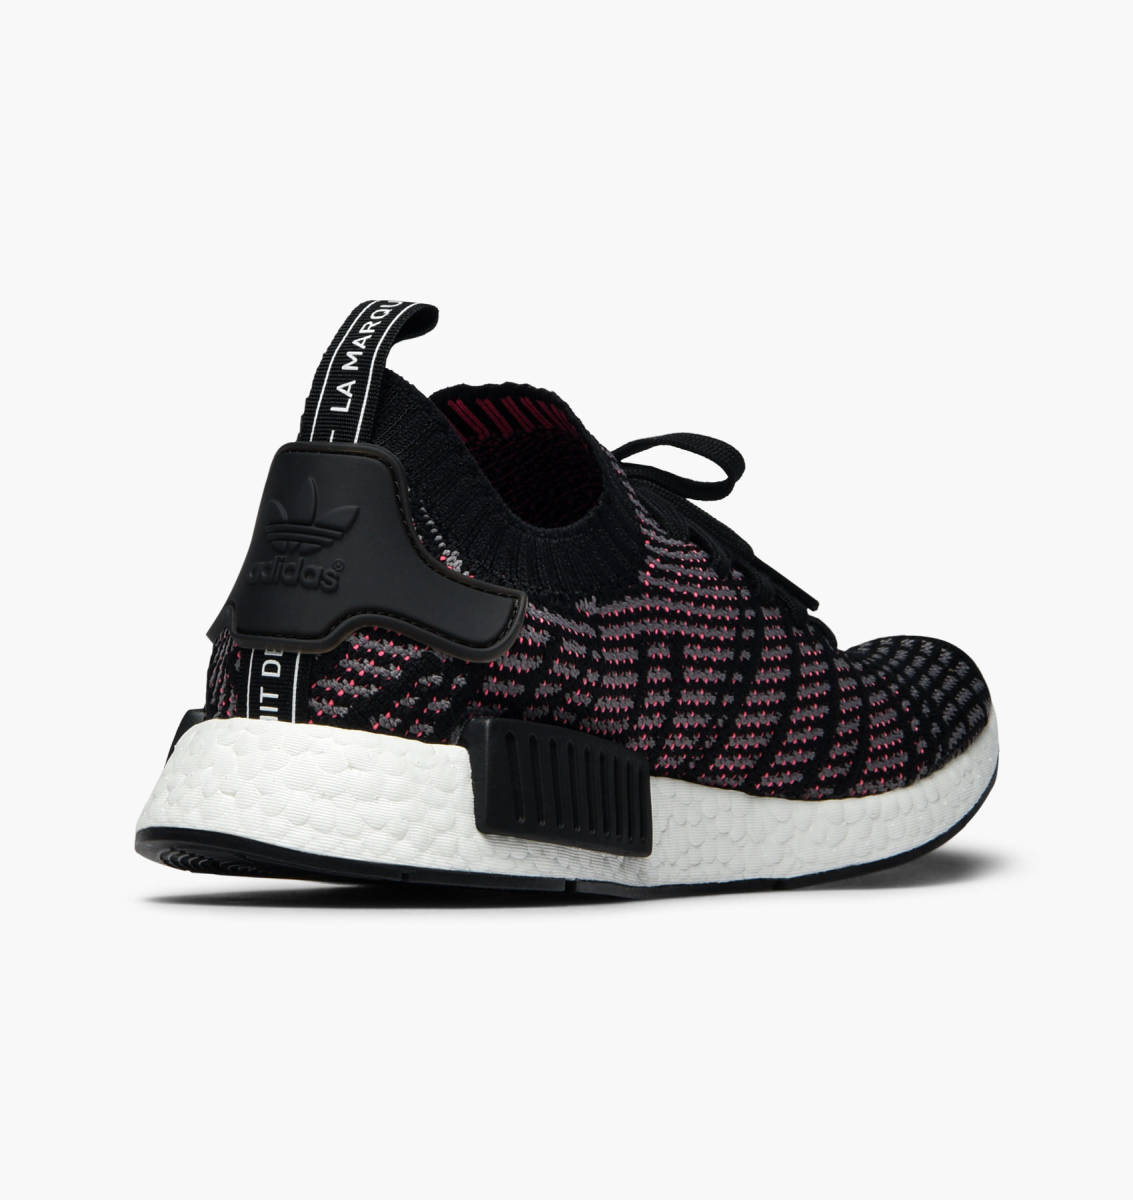 check out f37ae 27a1e ... pretty cheap adidas Originals NMD R1 STLT PK - CQ2386 everysize ...